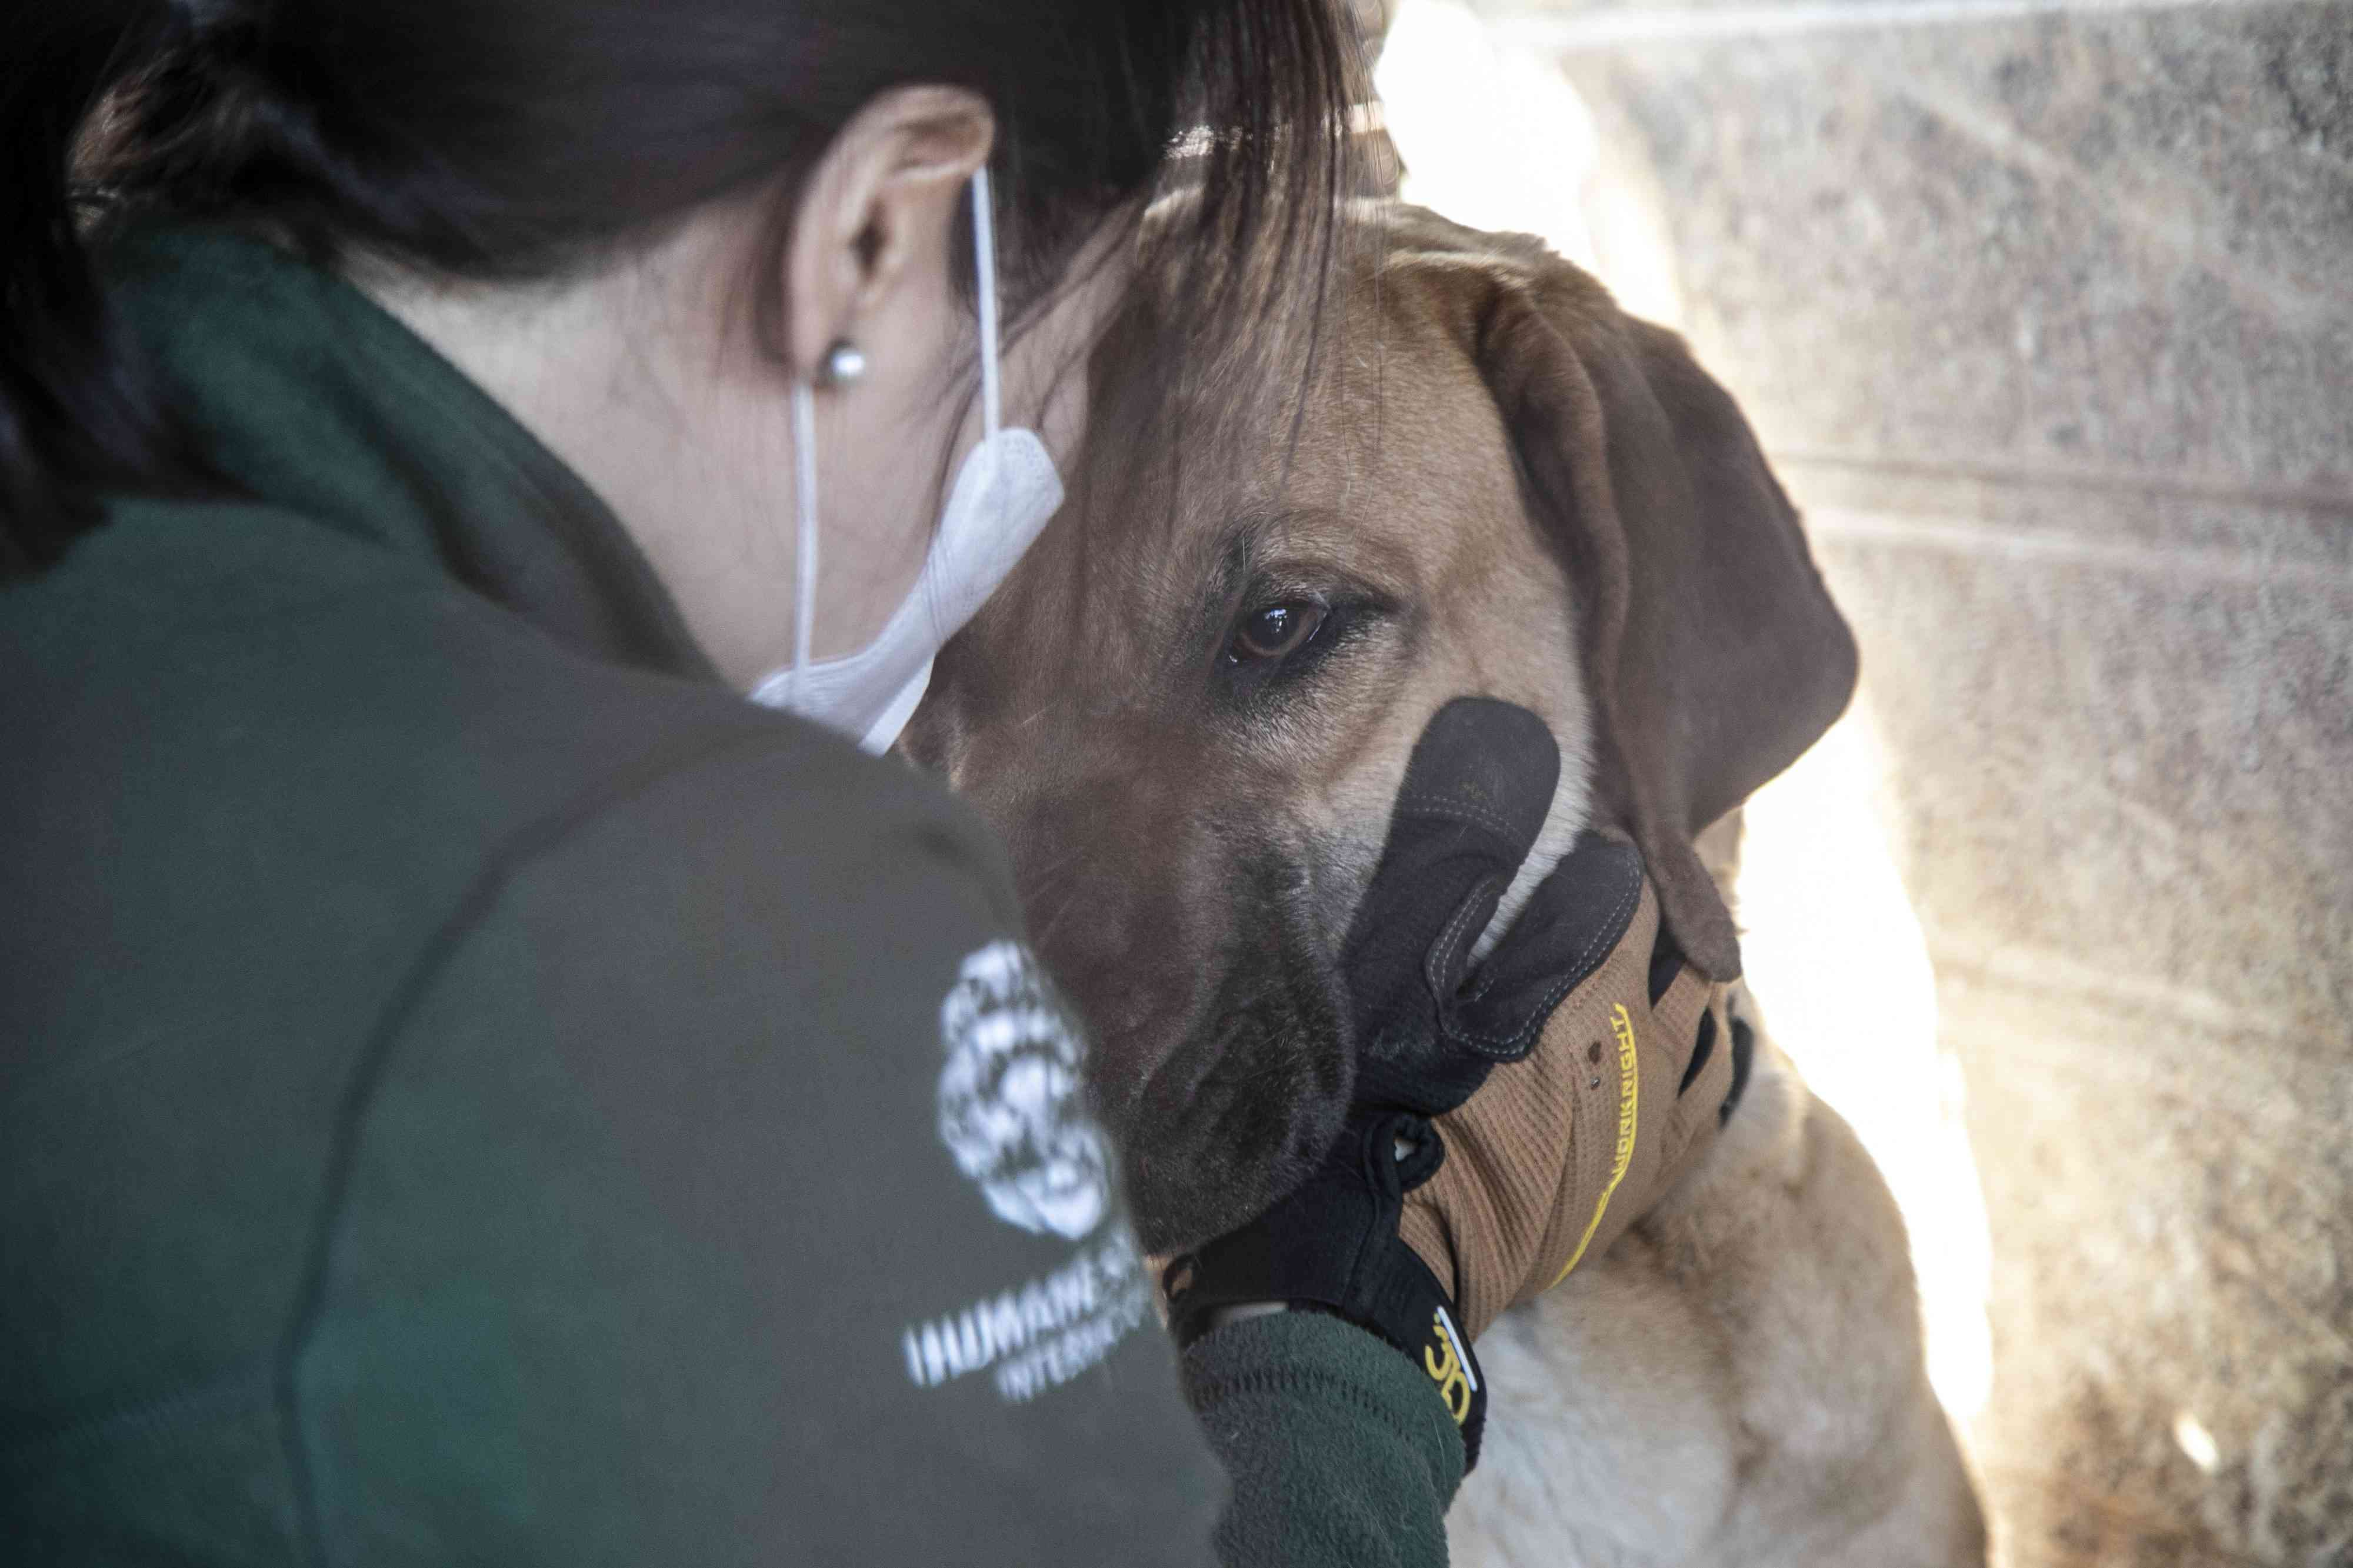 Dog is comforted at former dog meat farm